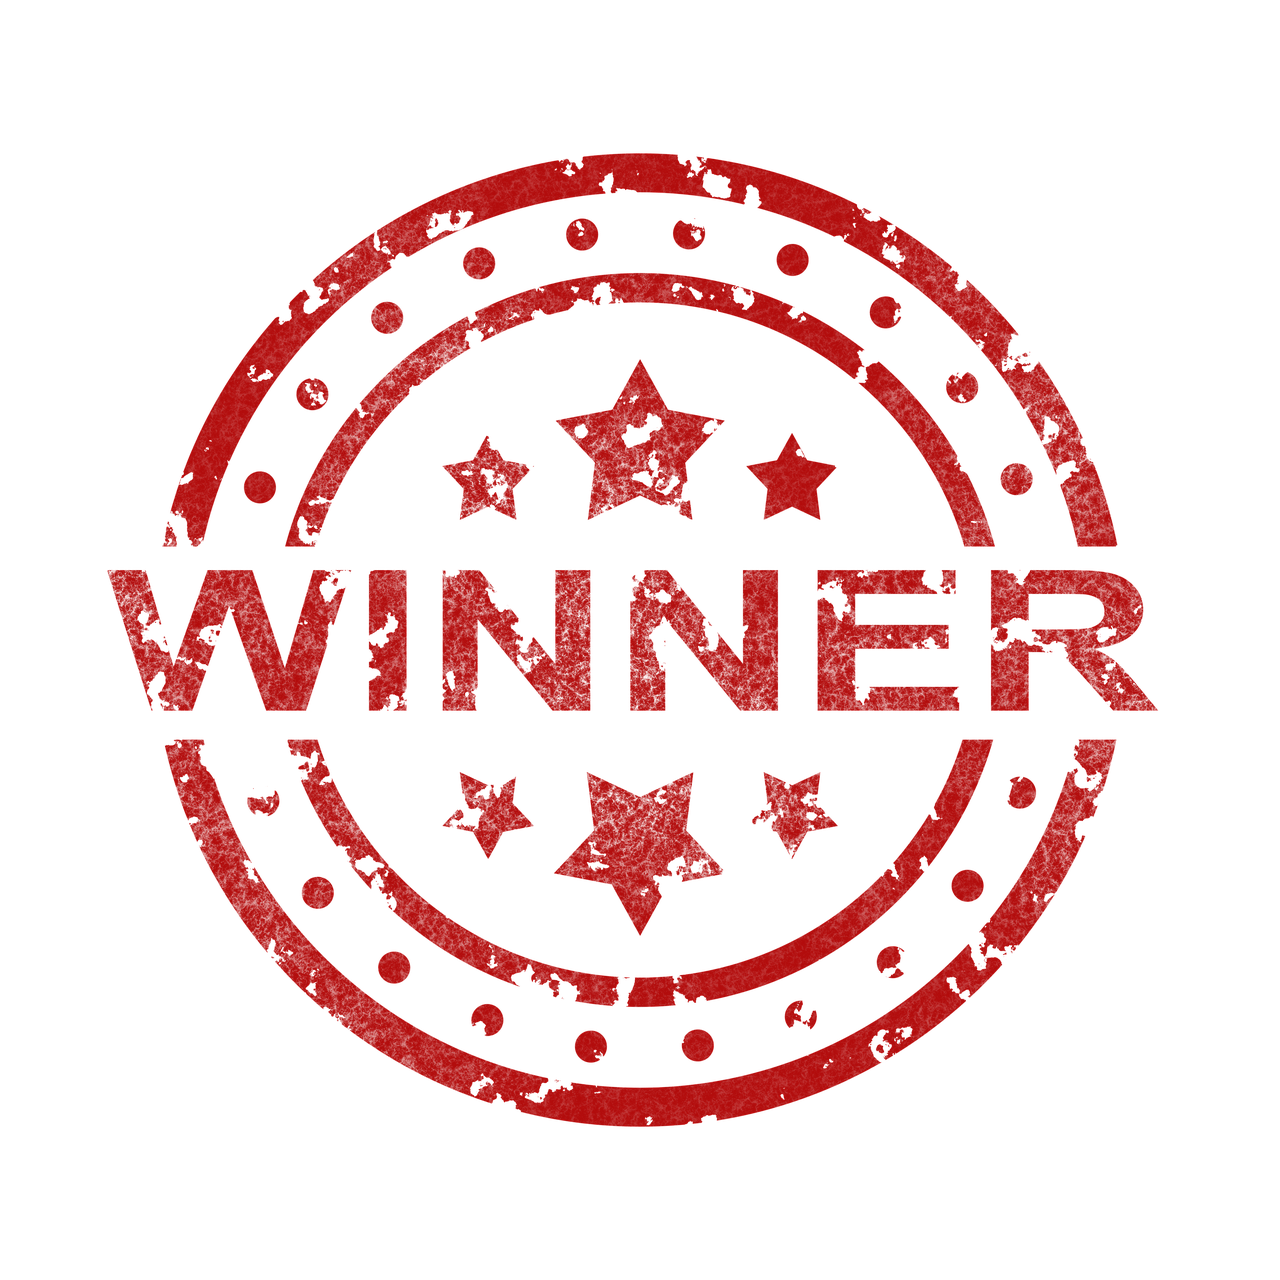 Winner Best Success - Free image on Pixabay